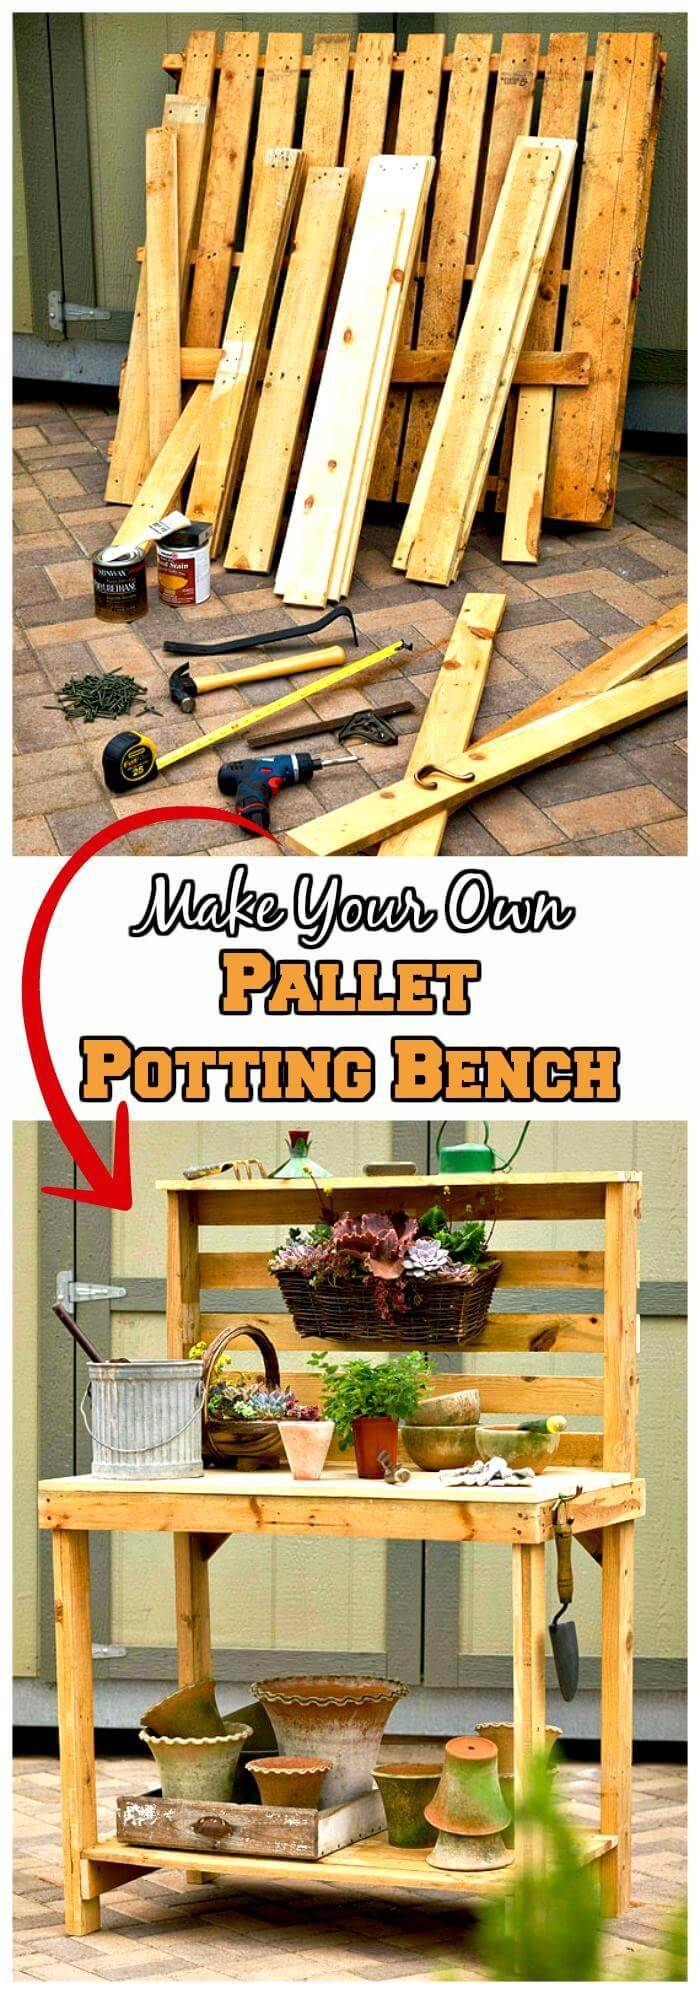 DIY Pallet Potting Bench Tutorial